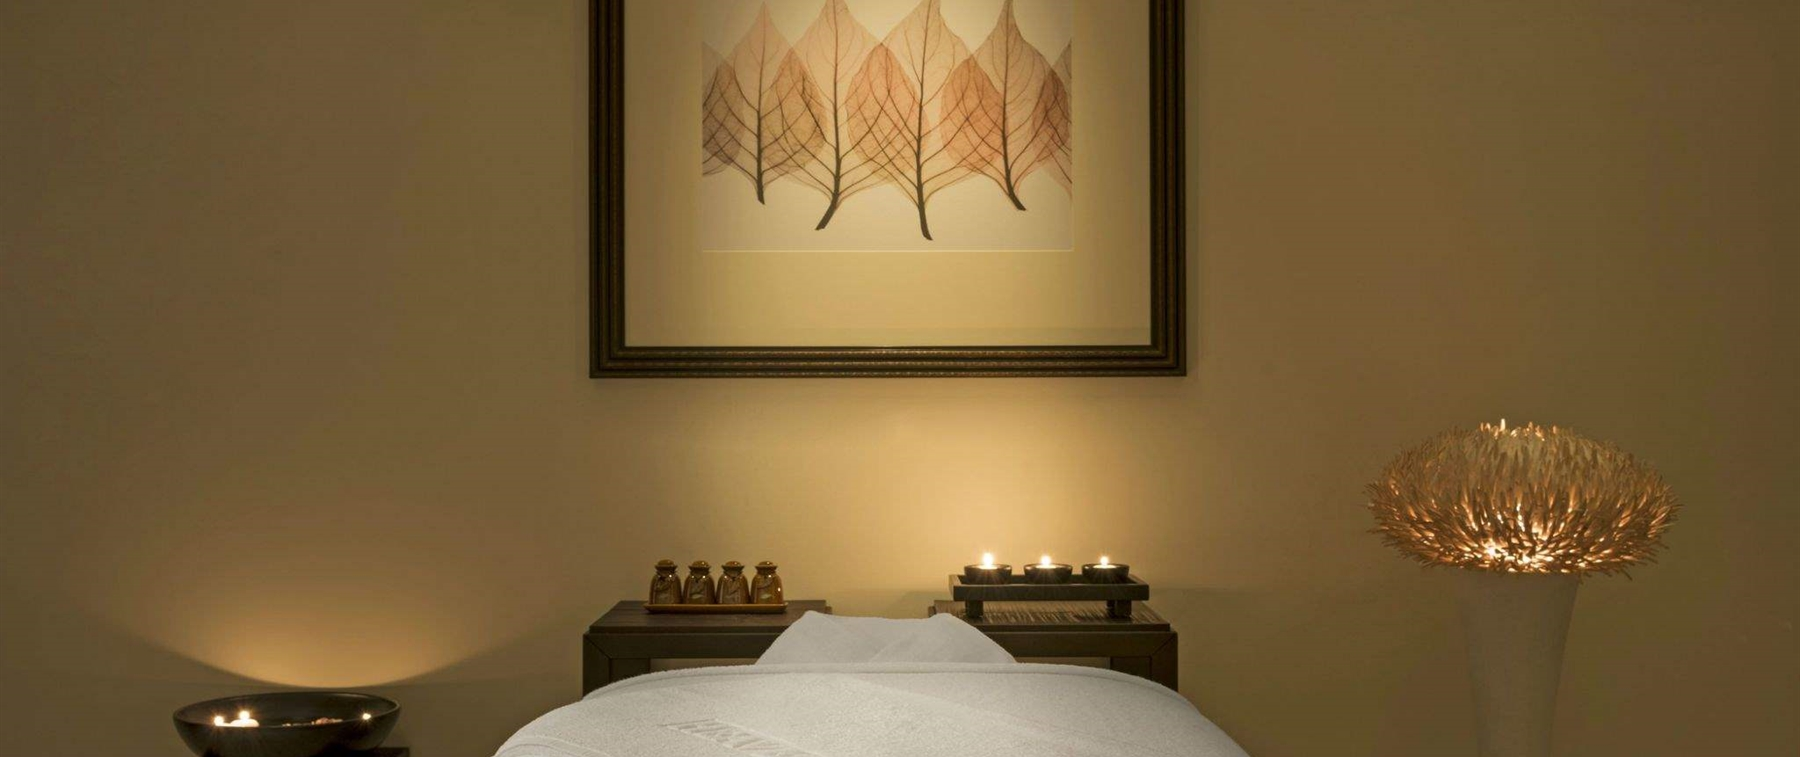 Quiet and calm spa treatment at Heavenly Spa